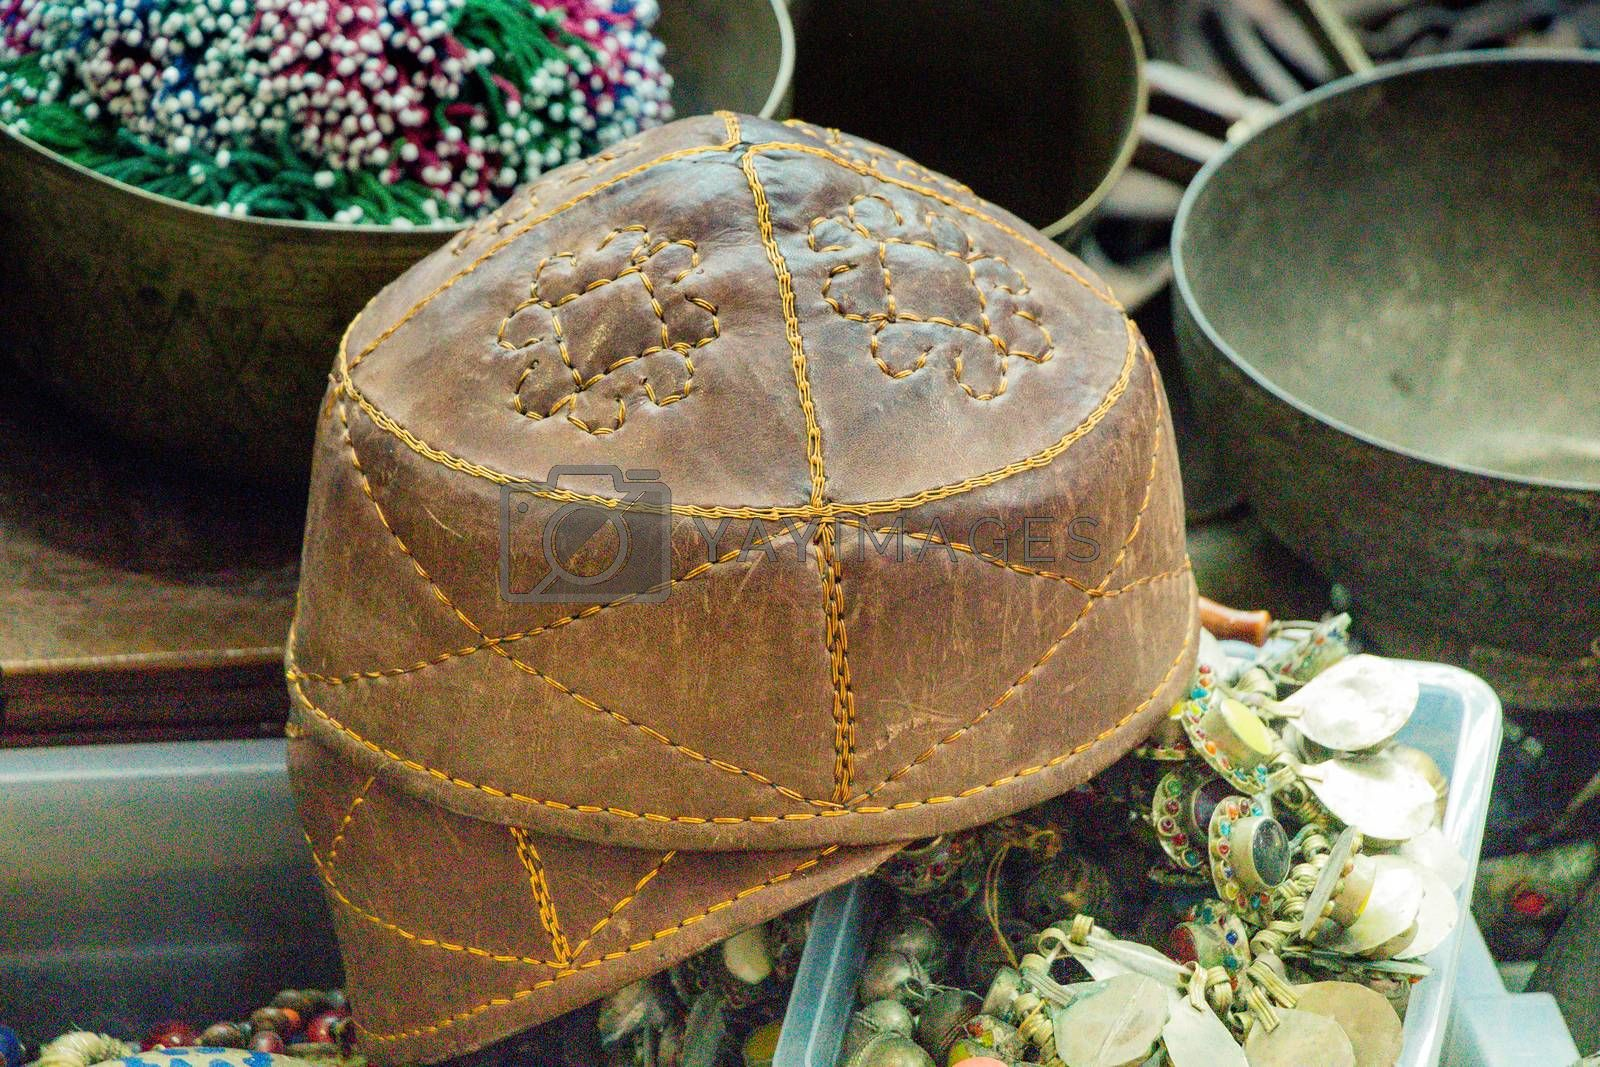 Traditional turkish nad Turkic hat in view